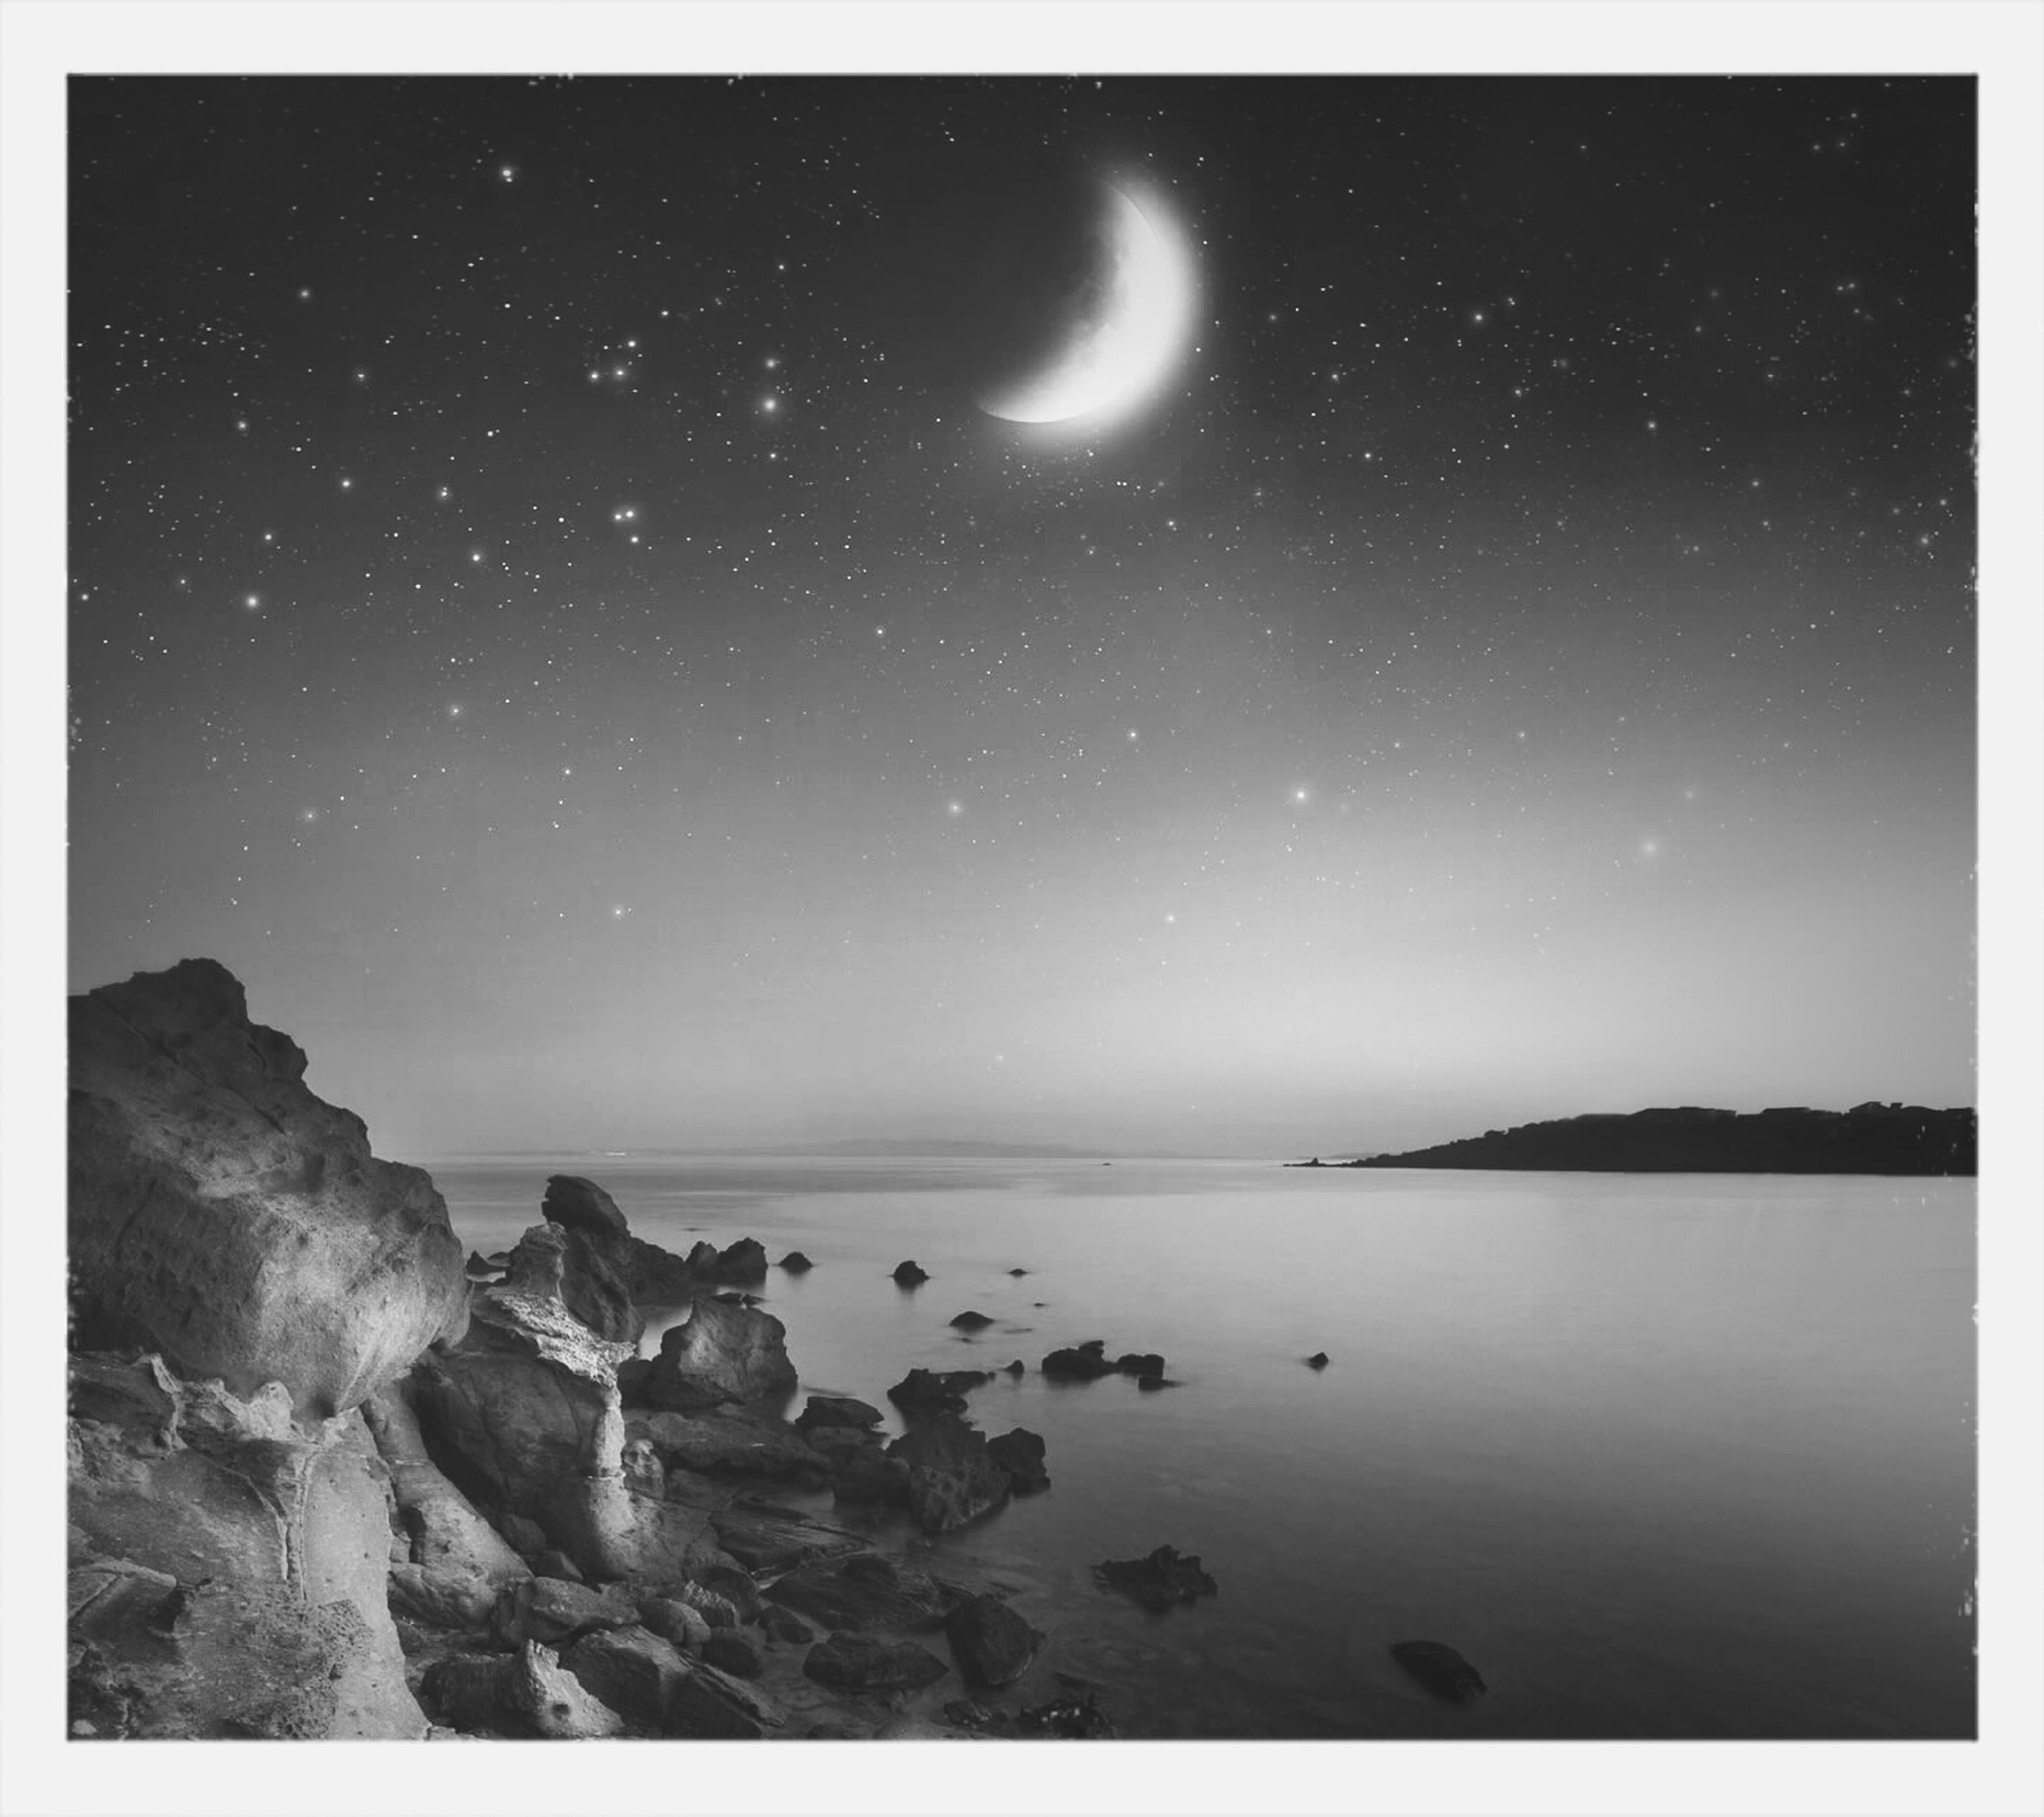 scenics, tranquil scene, beauty in nature, tranquility, night, star - space, astronomy, water, nature, sky, star field, idyllic, star, sea, majestic, galaxy, space, moon, outdoors, no people